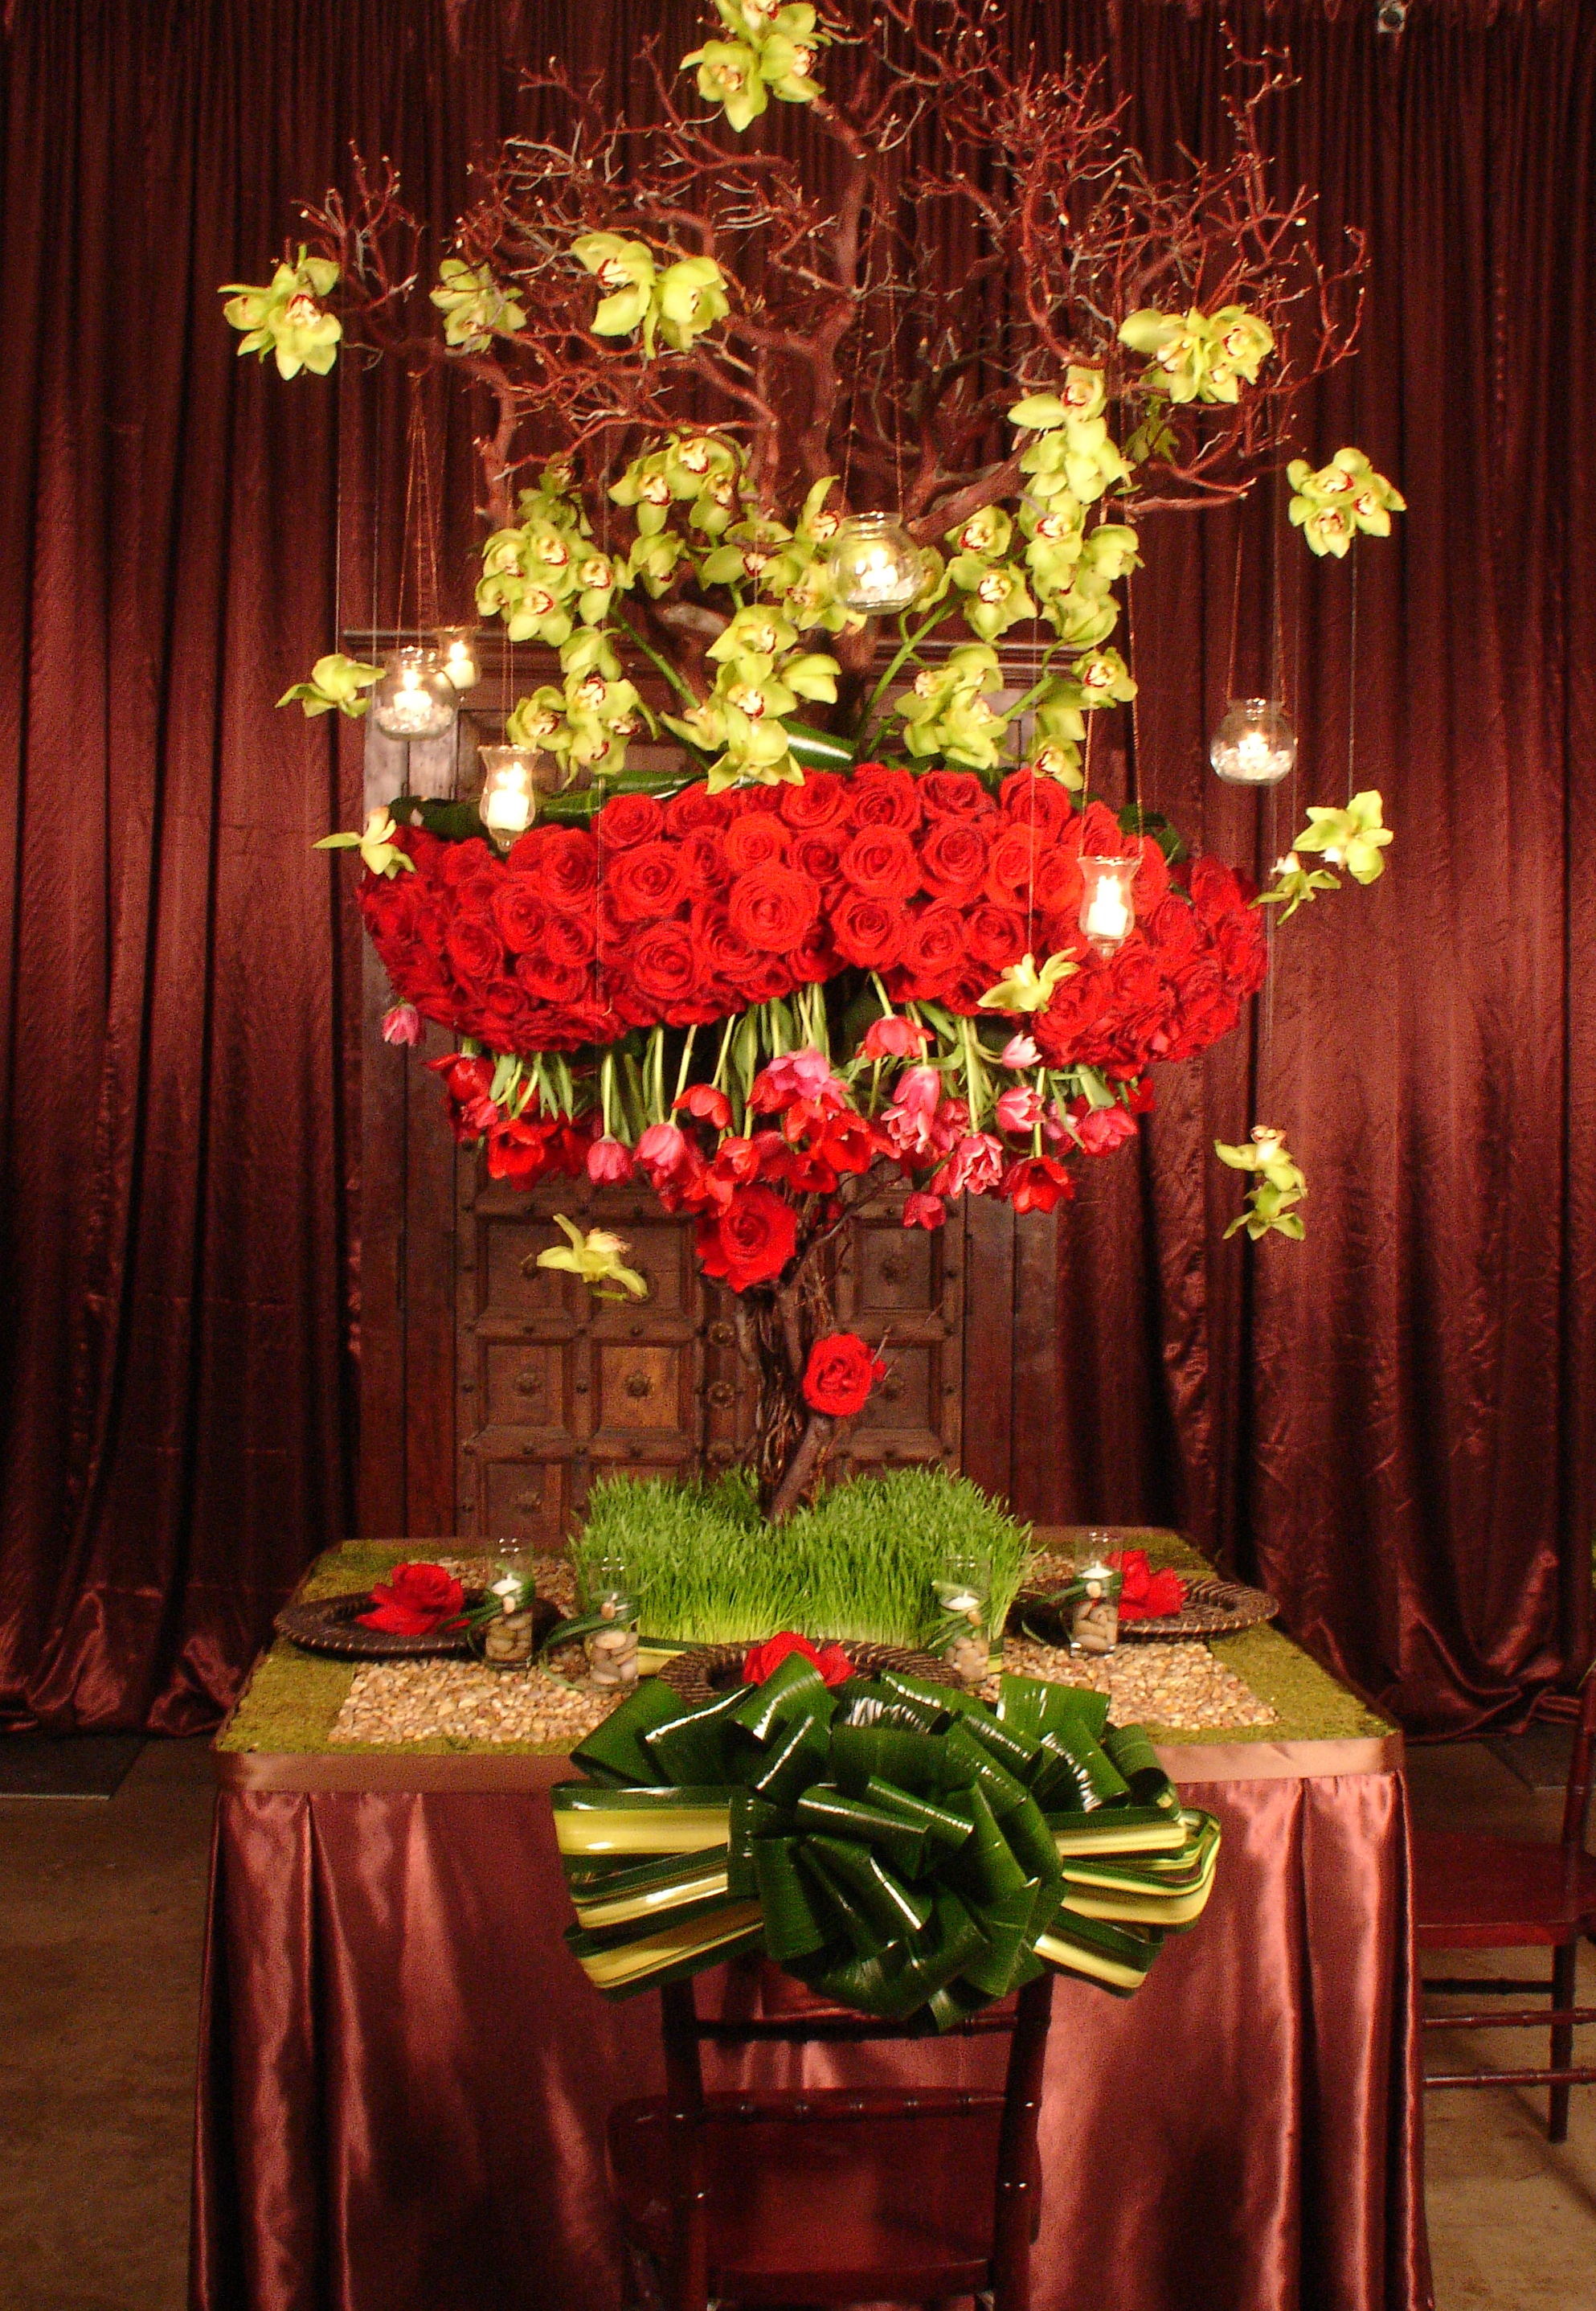 Flowers & Decor, red, Flowers, Beverly, Weiss, Wilshire, Regent, Mindy, Shirvan design - haute events and florals